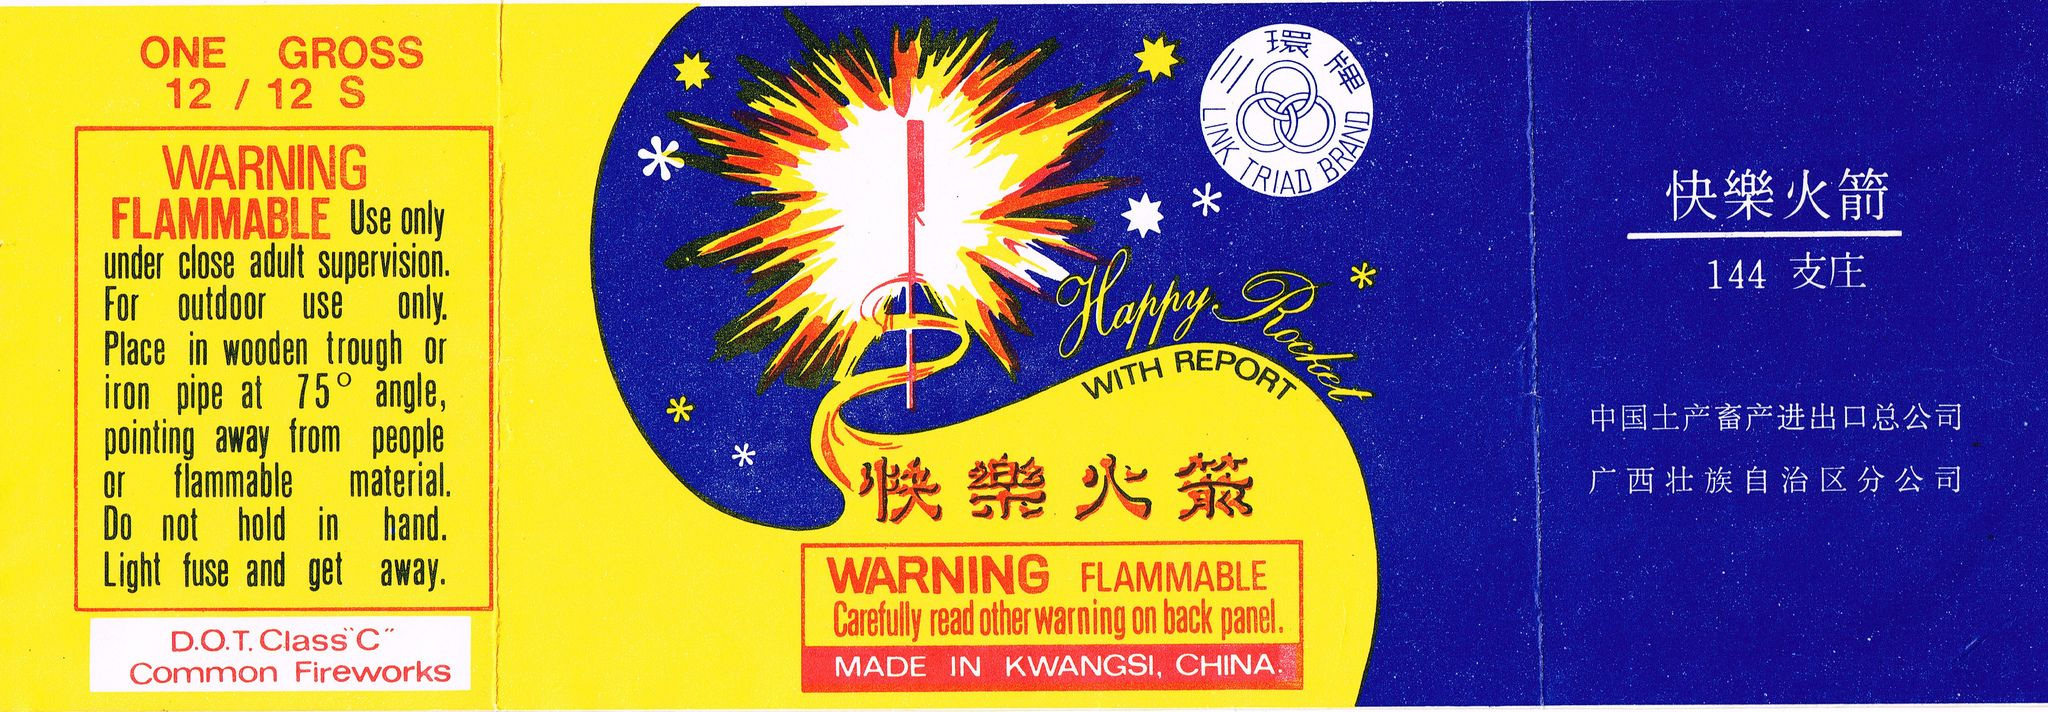 Collectibles Holiday & Seasonal Firework Label